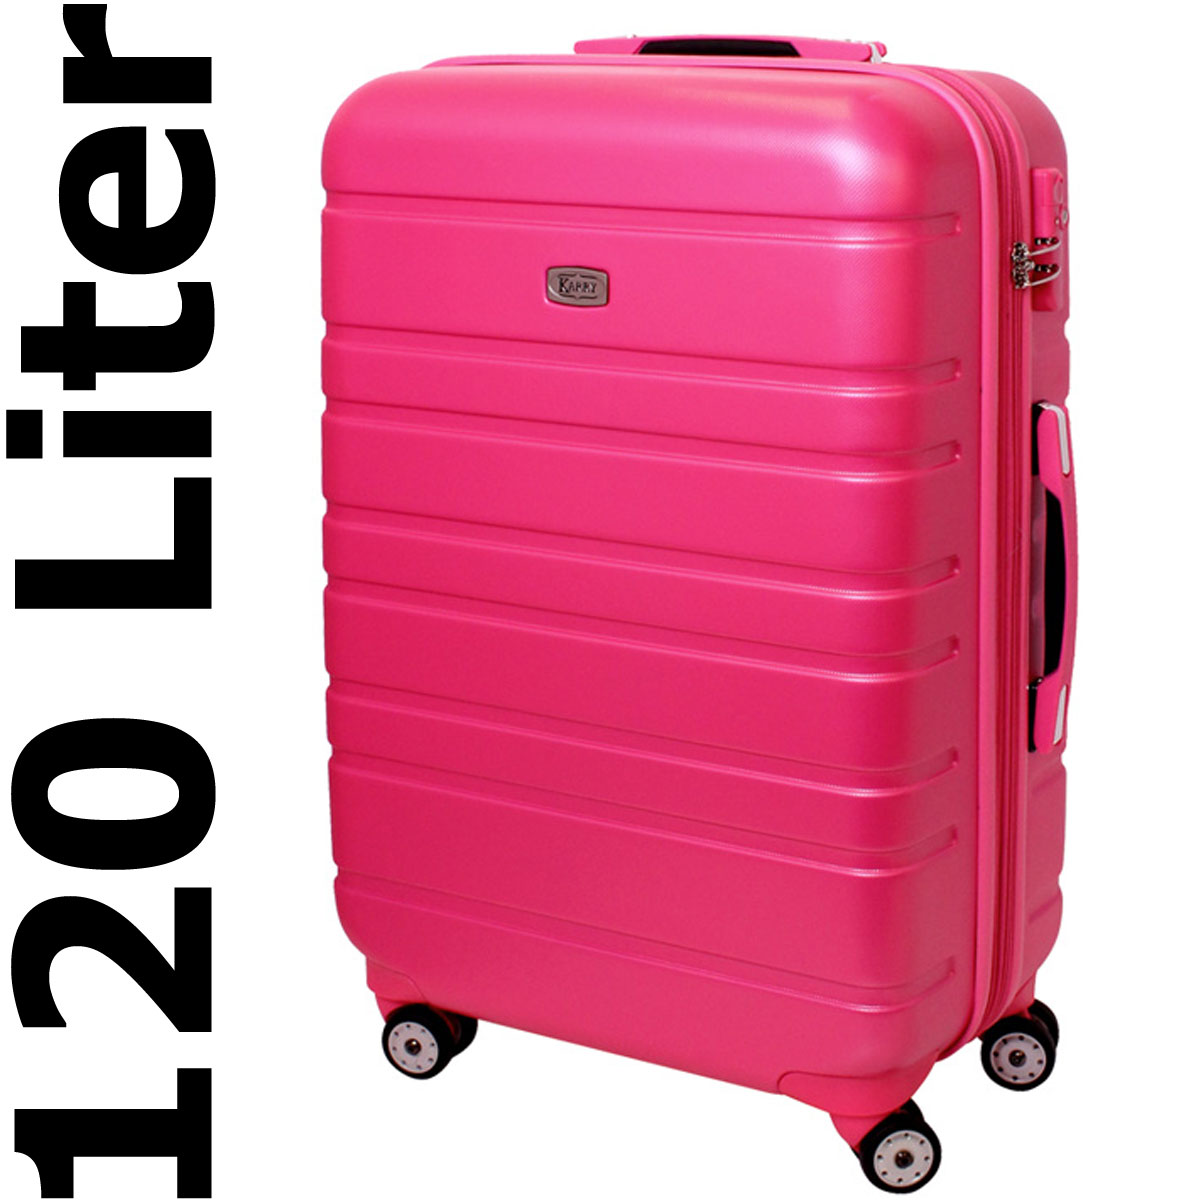 xxl hartschalen koffer tsa zahlenschloss reise trolley 120 liter pink rosa 815 ebay. Black Bedroom Furniture Sets. Home Design Ideas